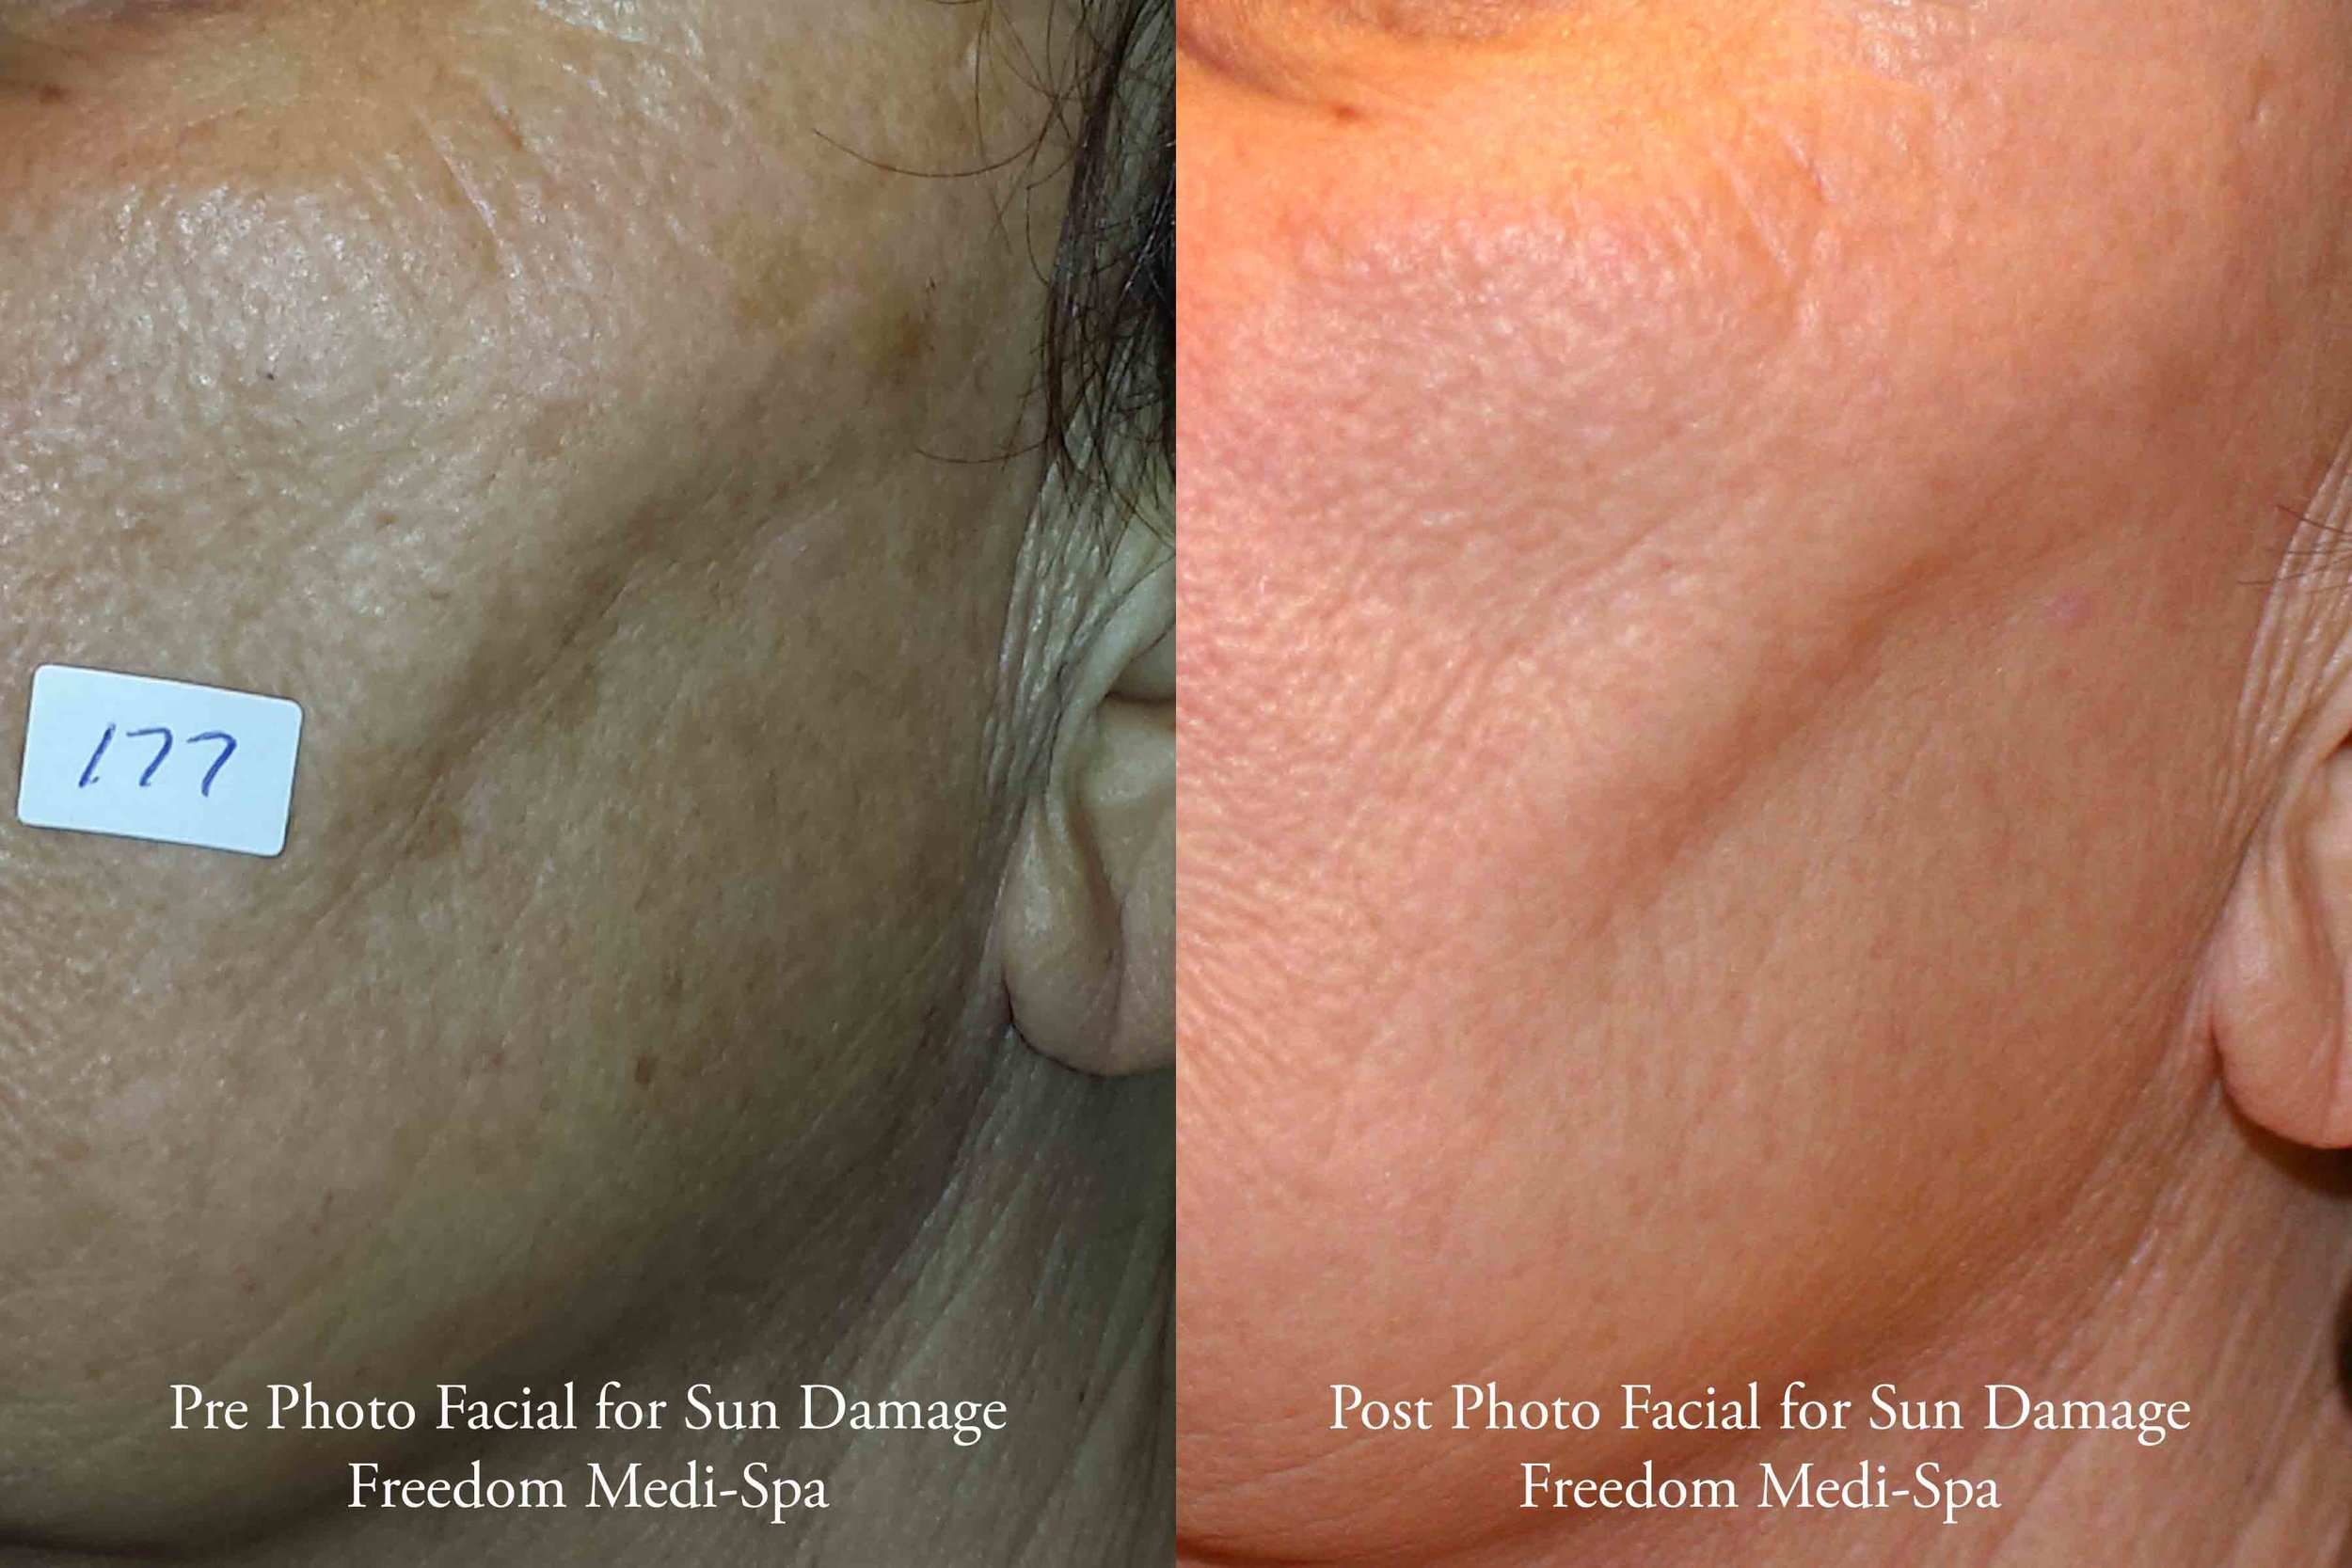 Photo Facial for Sun Damage 10-2016 2.jpg